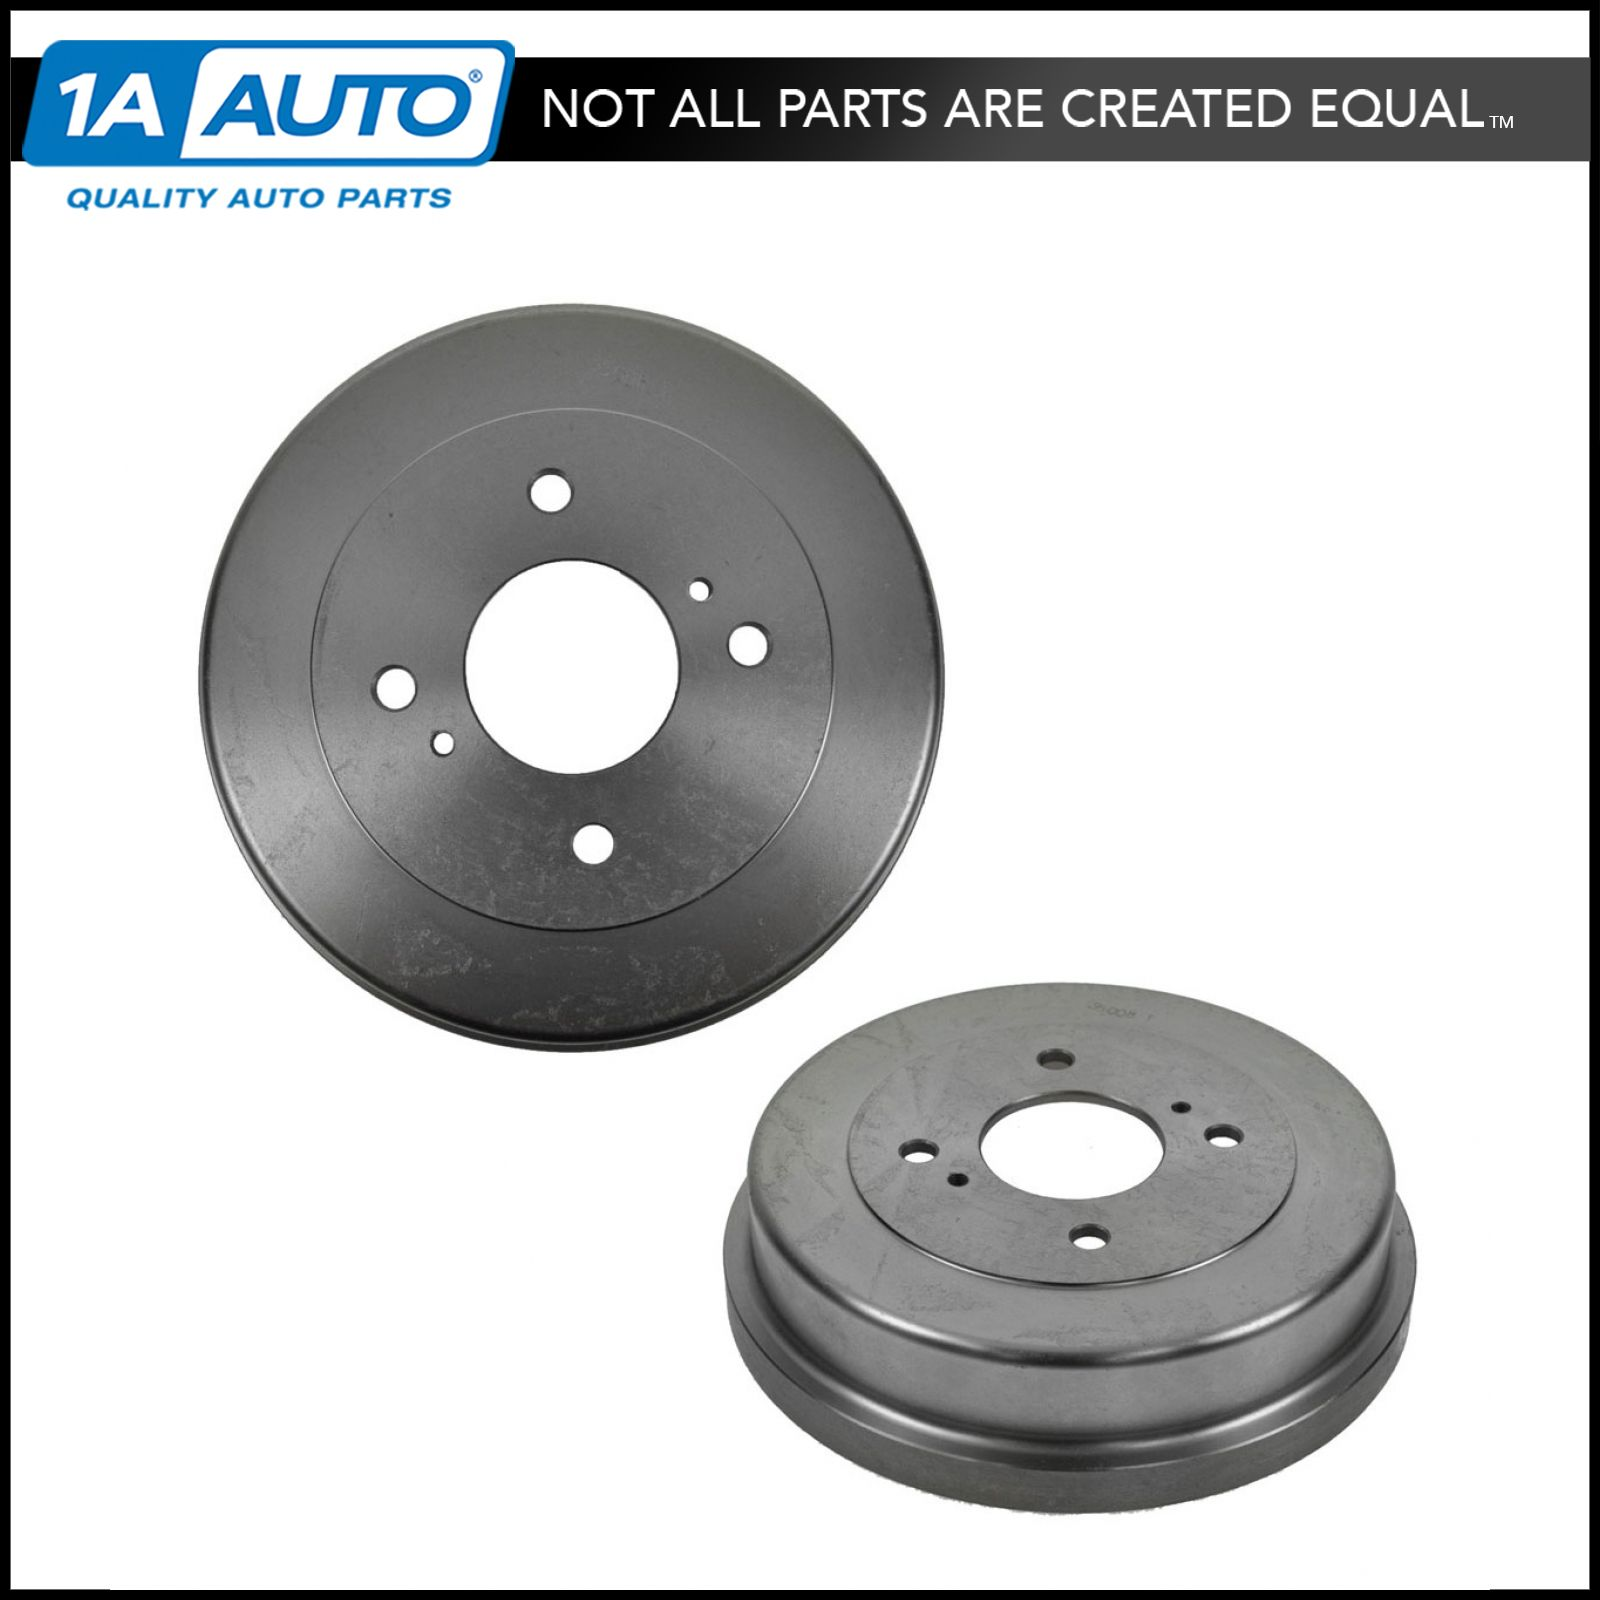 Details about Rear Brake Drums Pair Set of 2 For Altima Stanza Datsun 510  610 810 Maxima